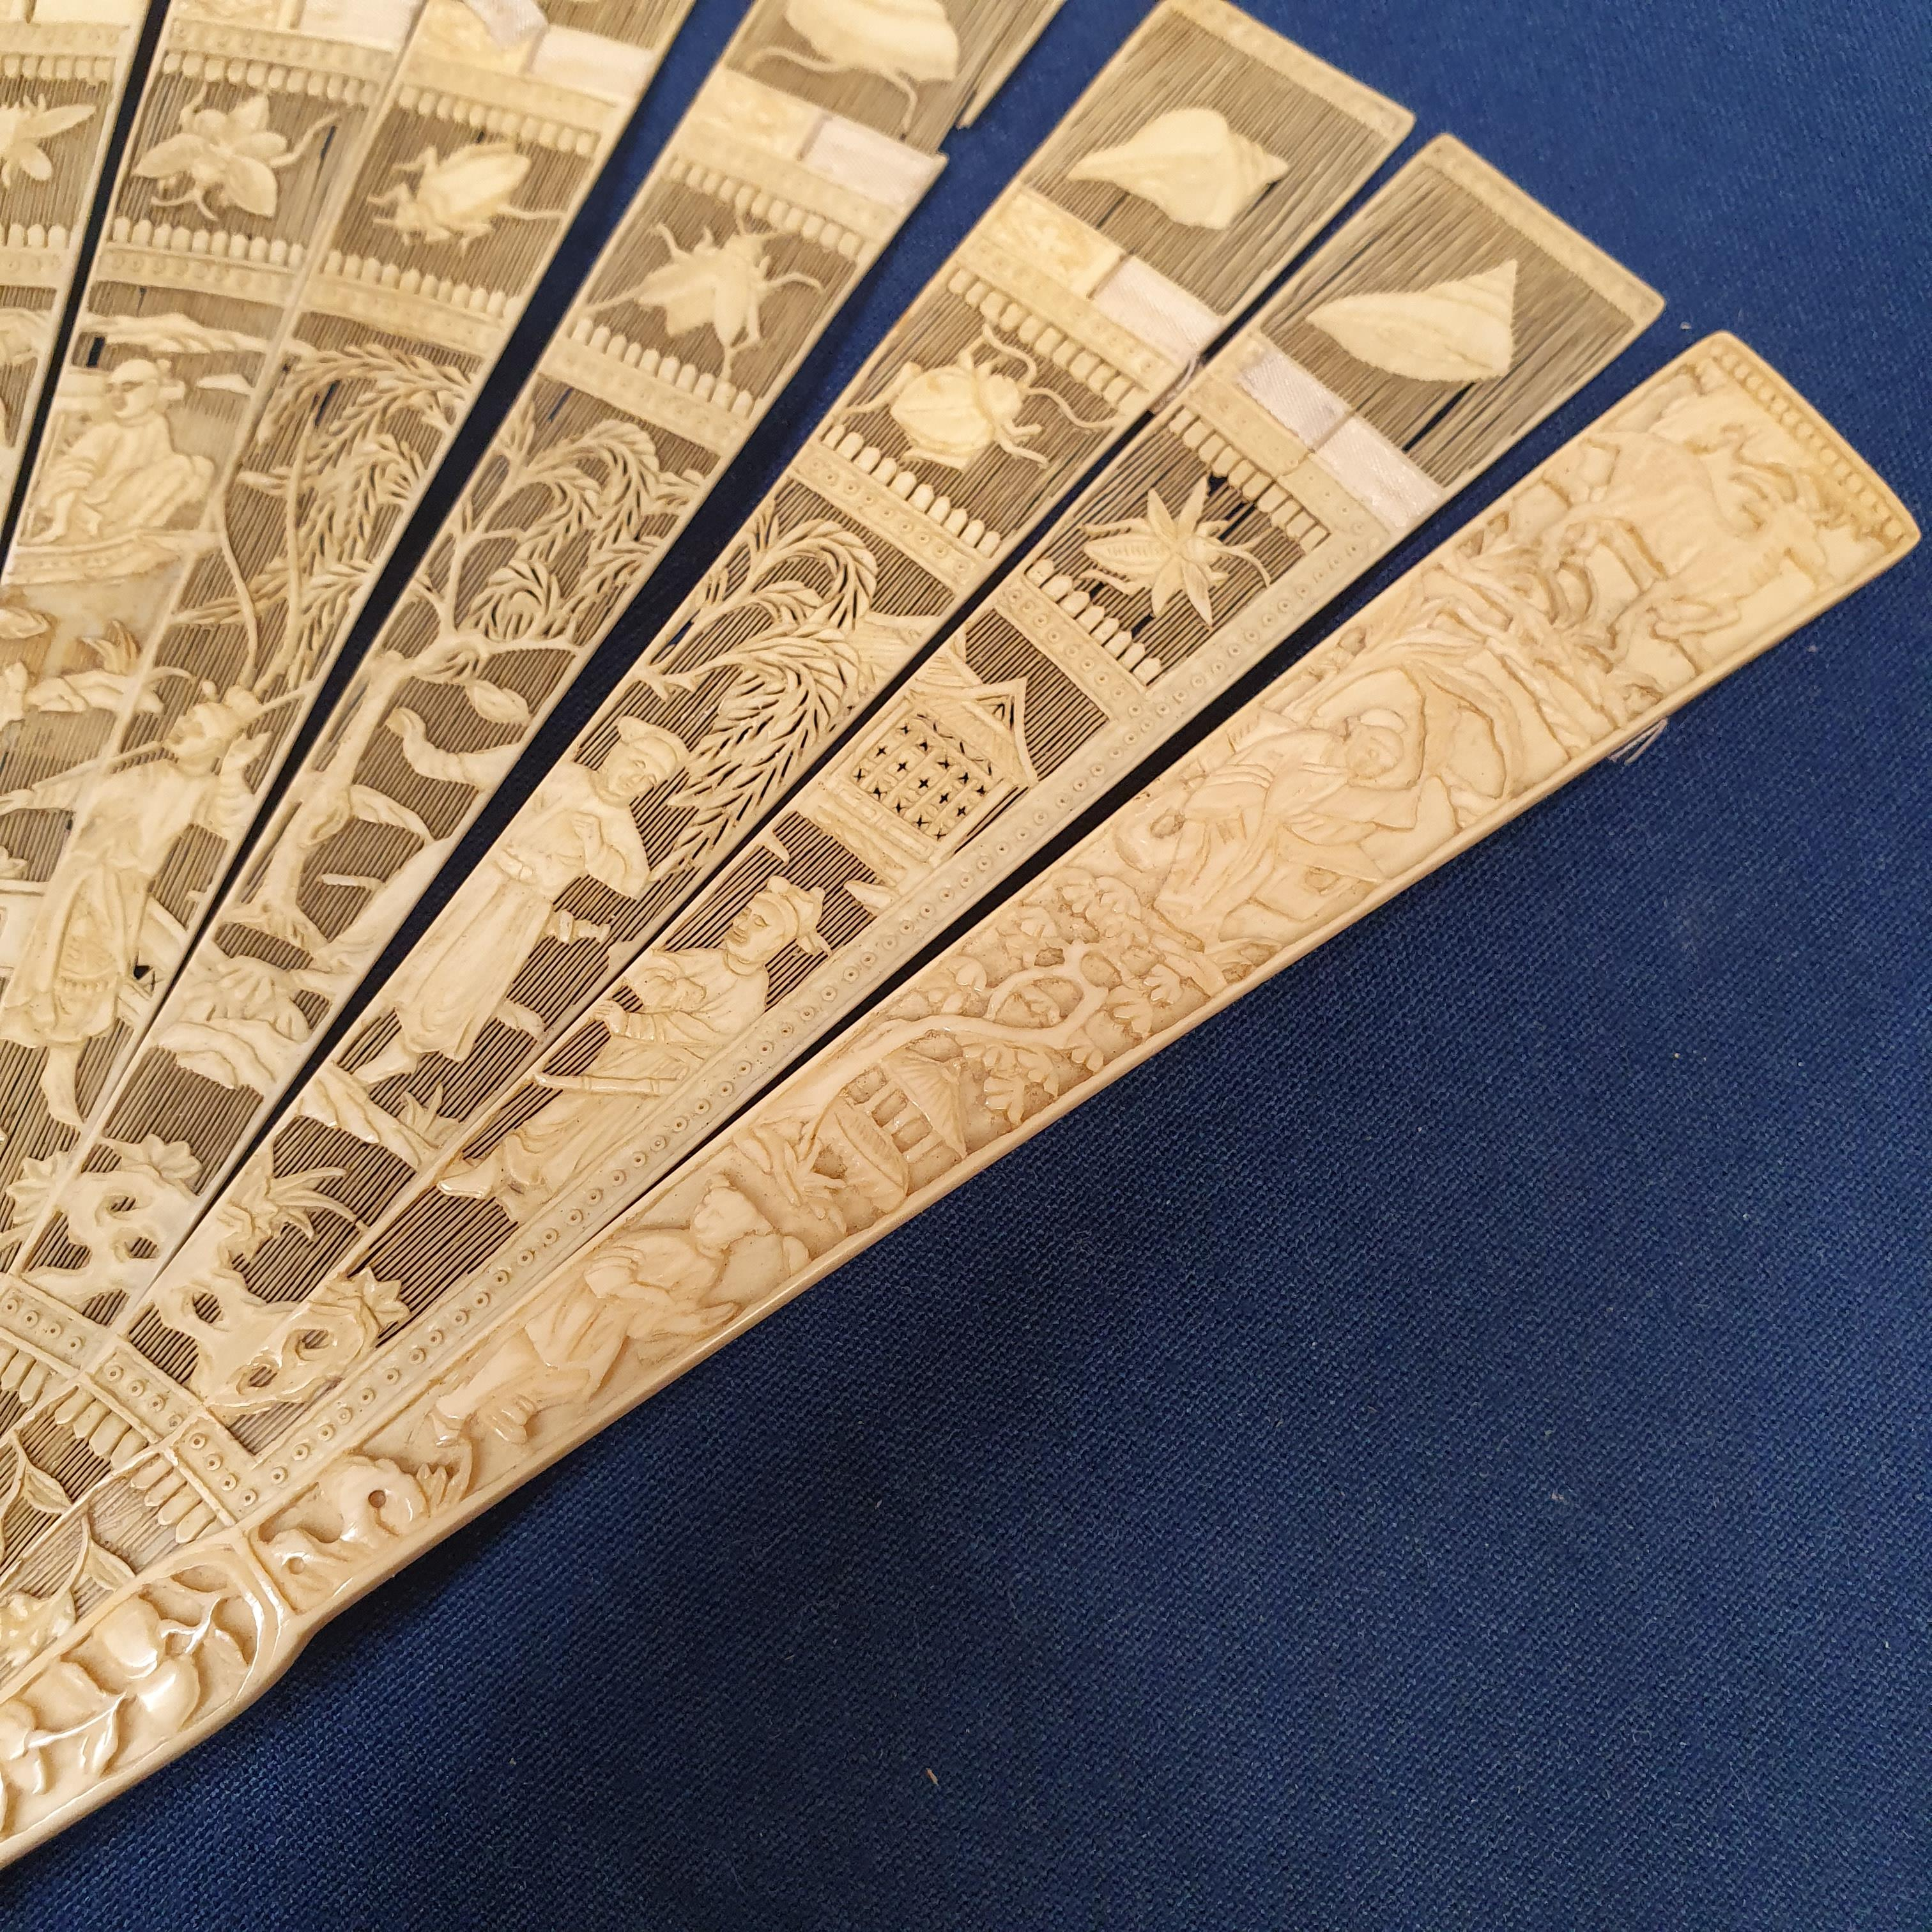 A Chinese ivory brisee fan, two others, and a similar fan with silk embroidered decoration, in a - Image 14 of 47